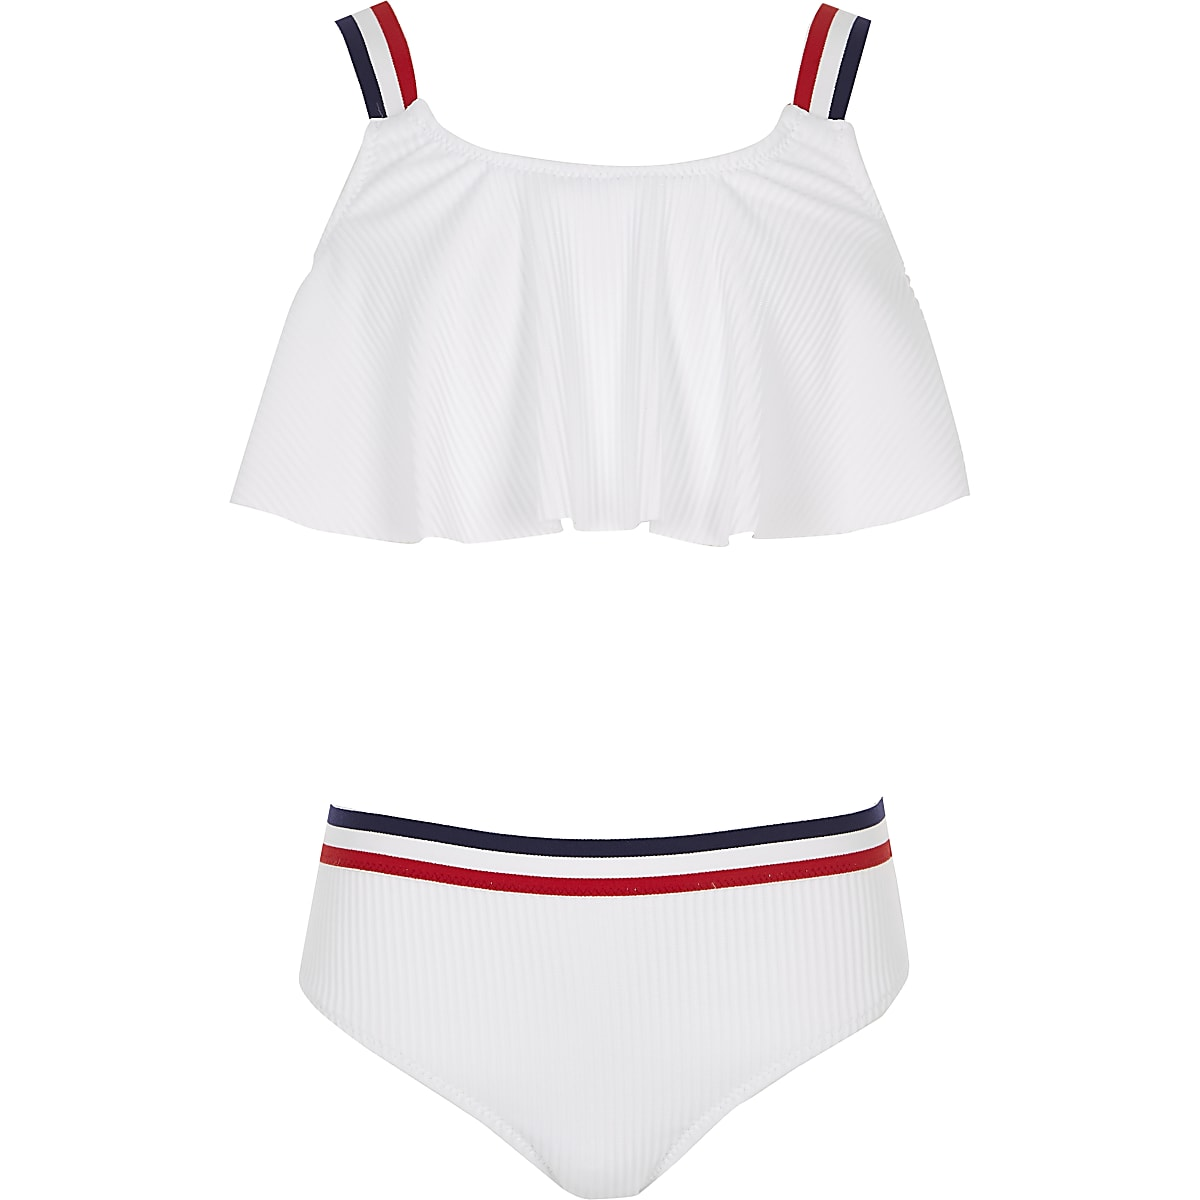 Girls white stripe elastic bikini set